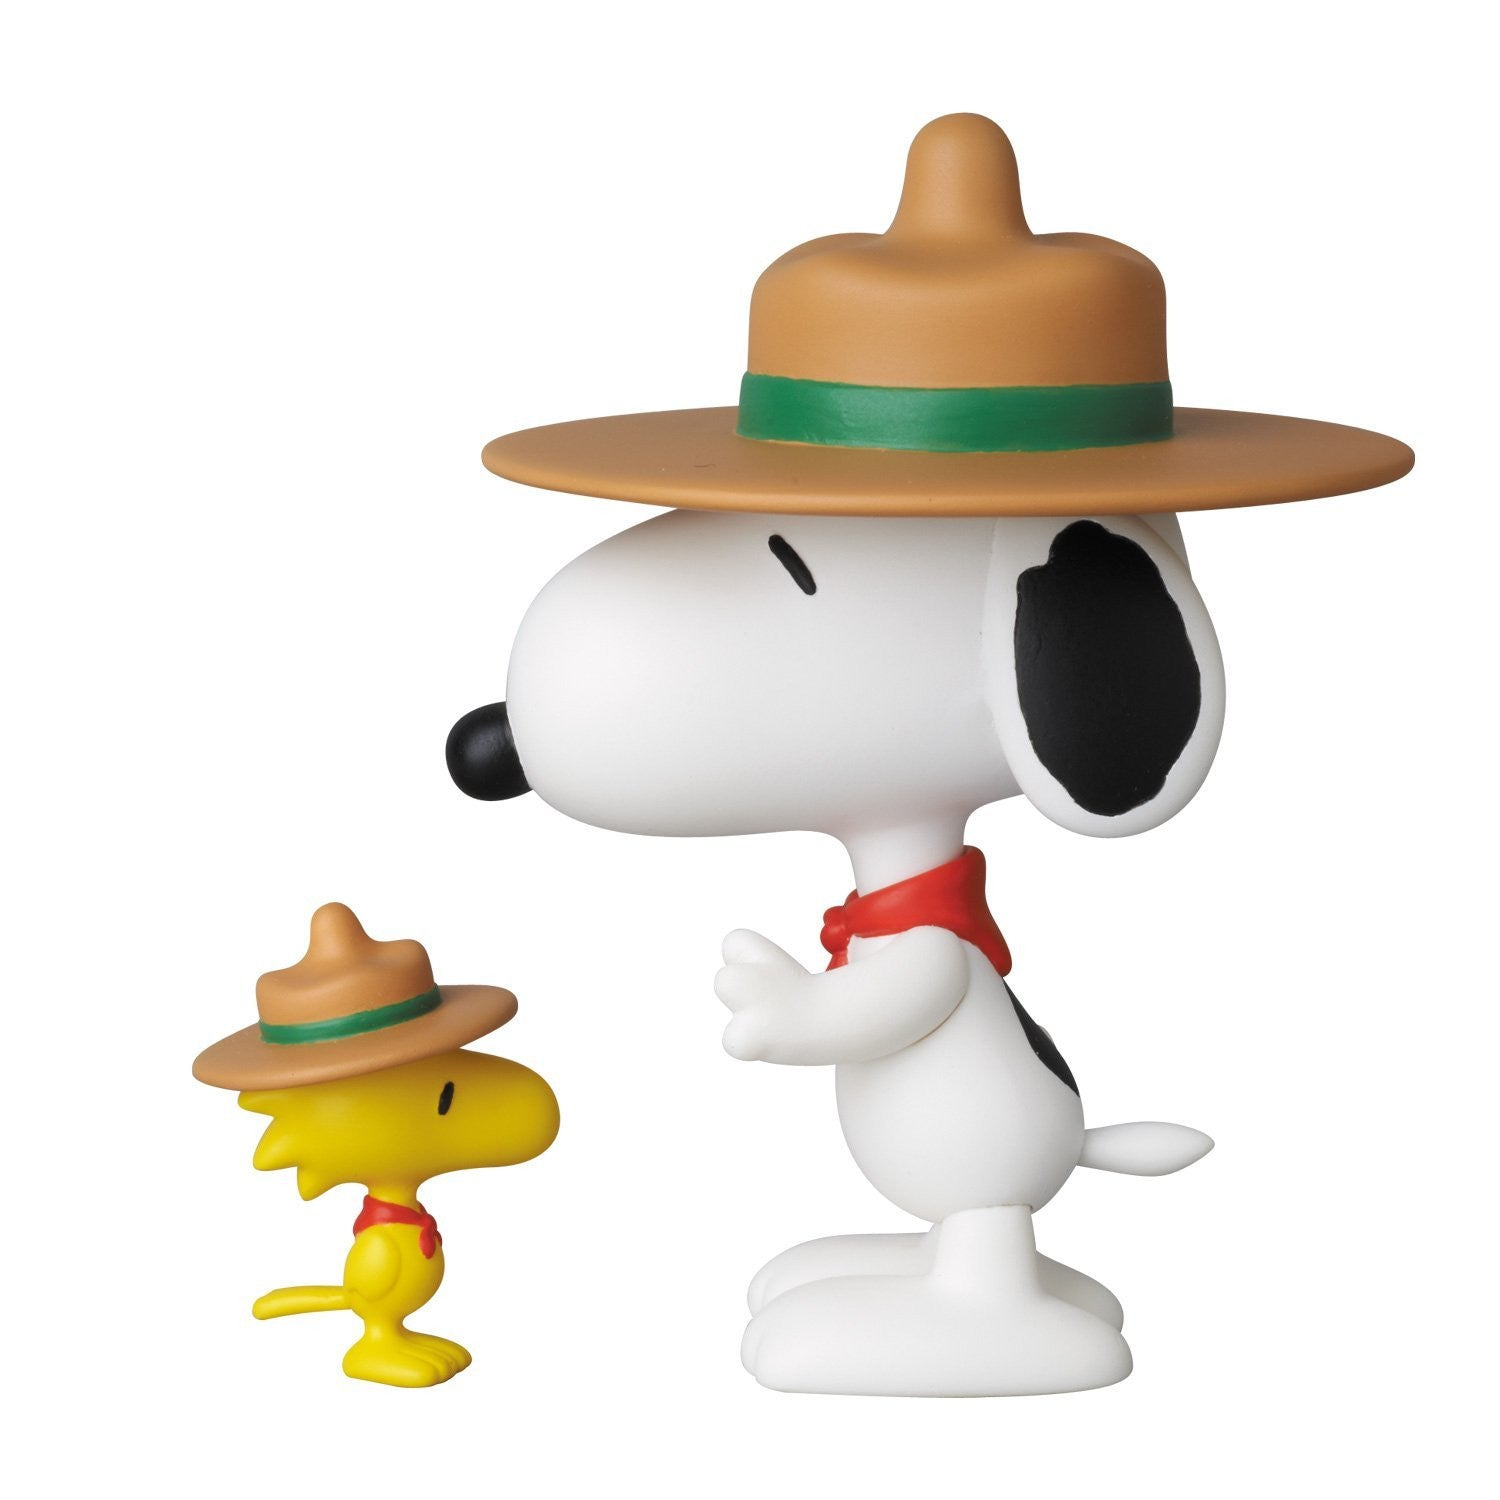 Beagle scouts Snoopy and Woodstock-Superherotoystore.com- www.superherotoystore.com-Action Figure